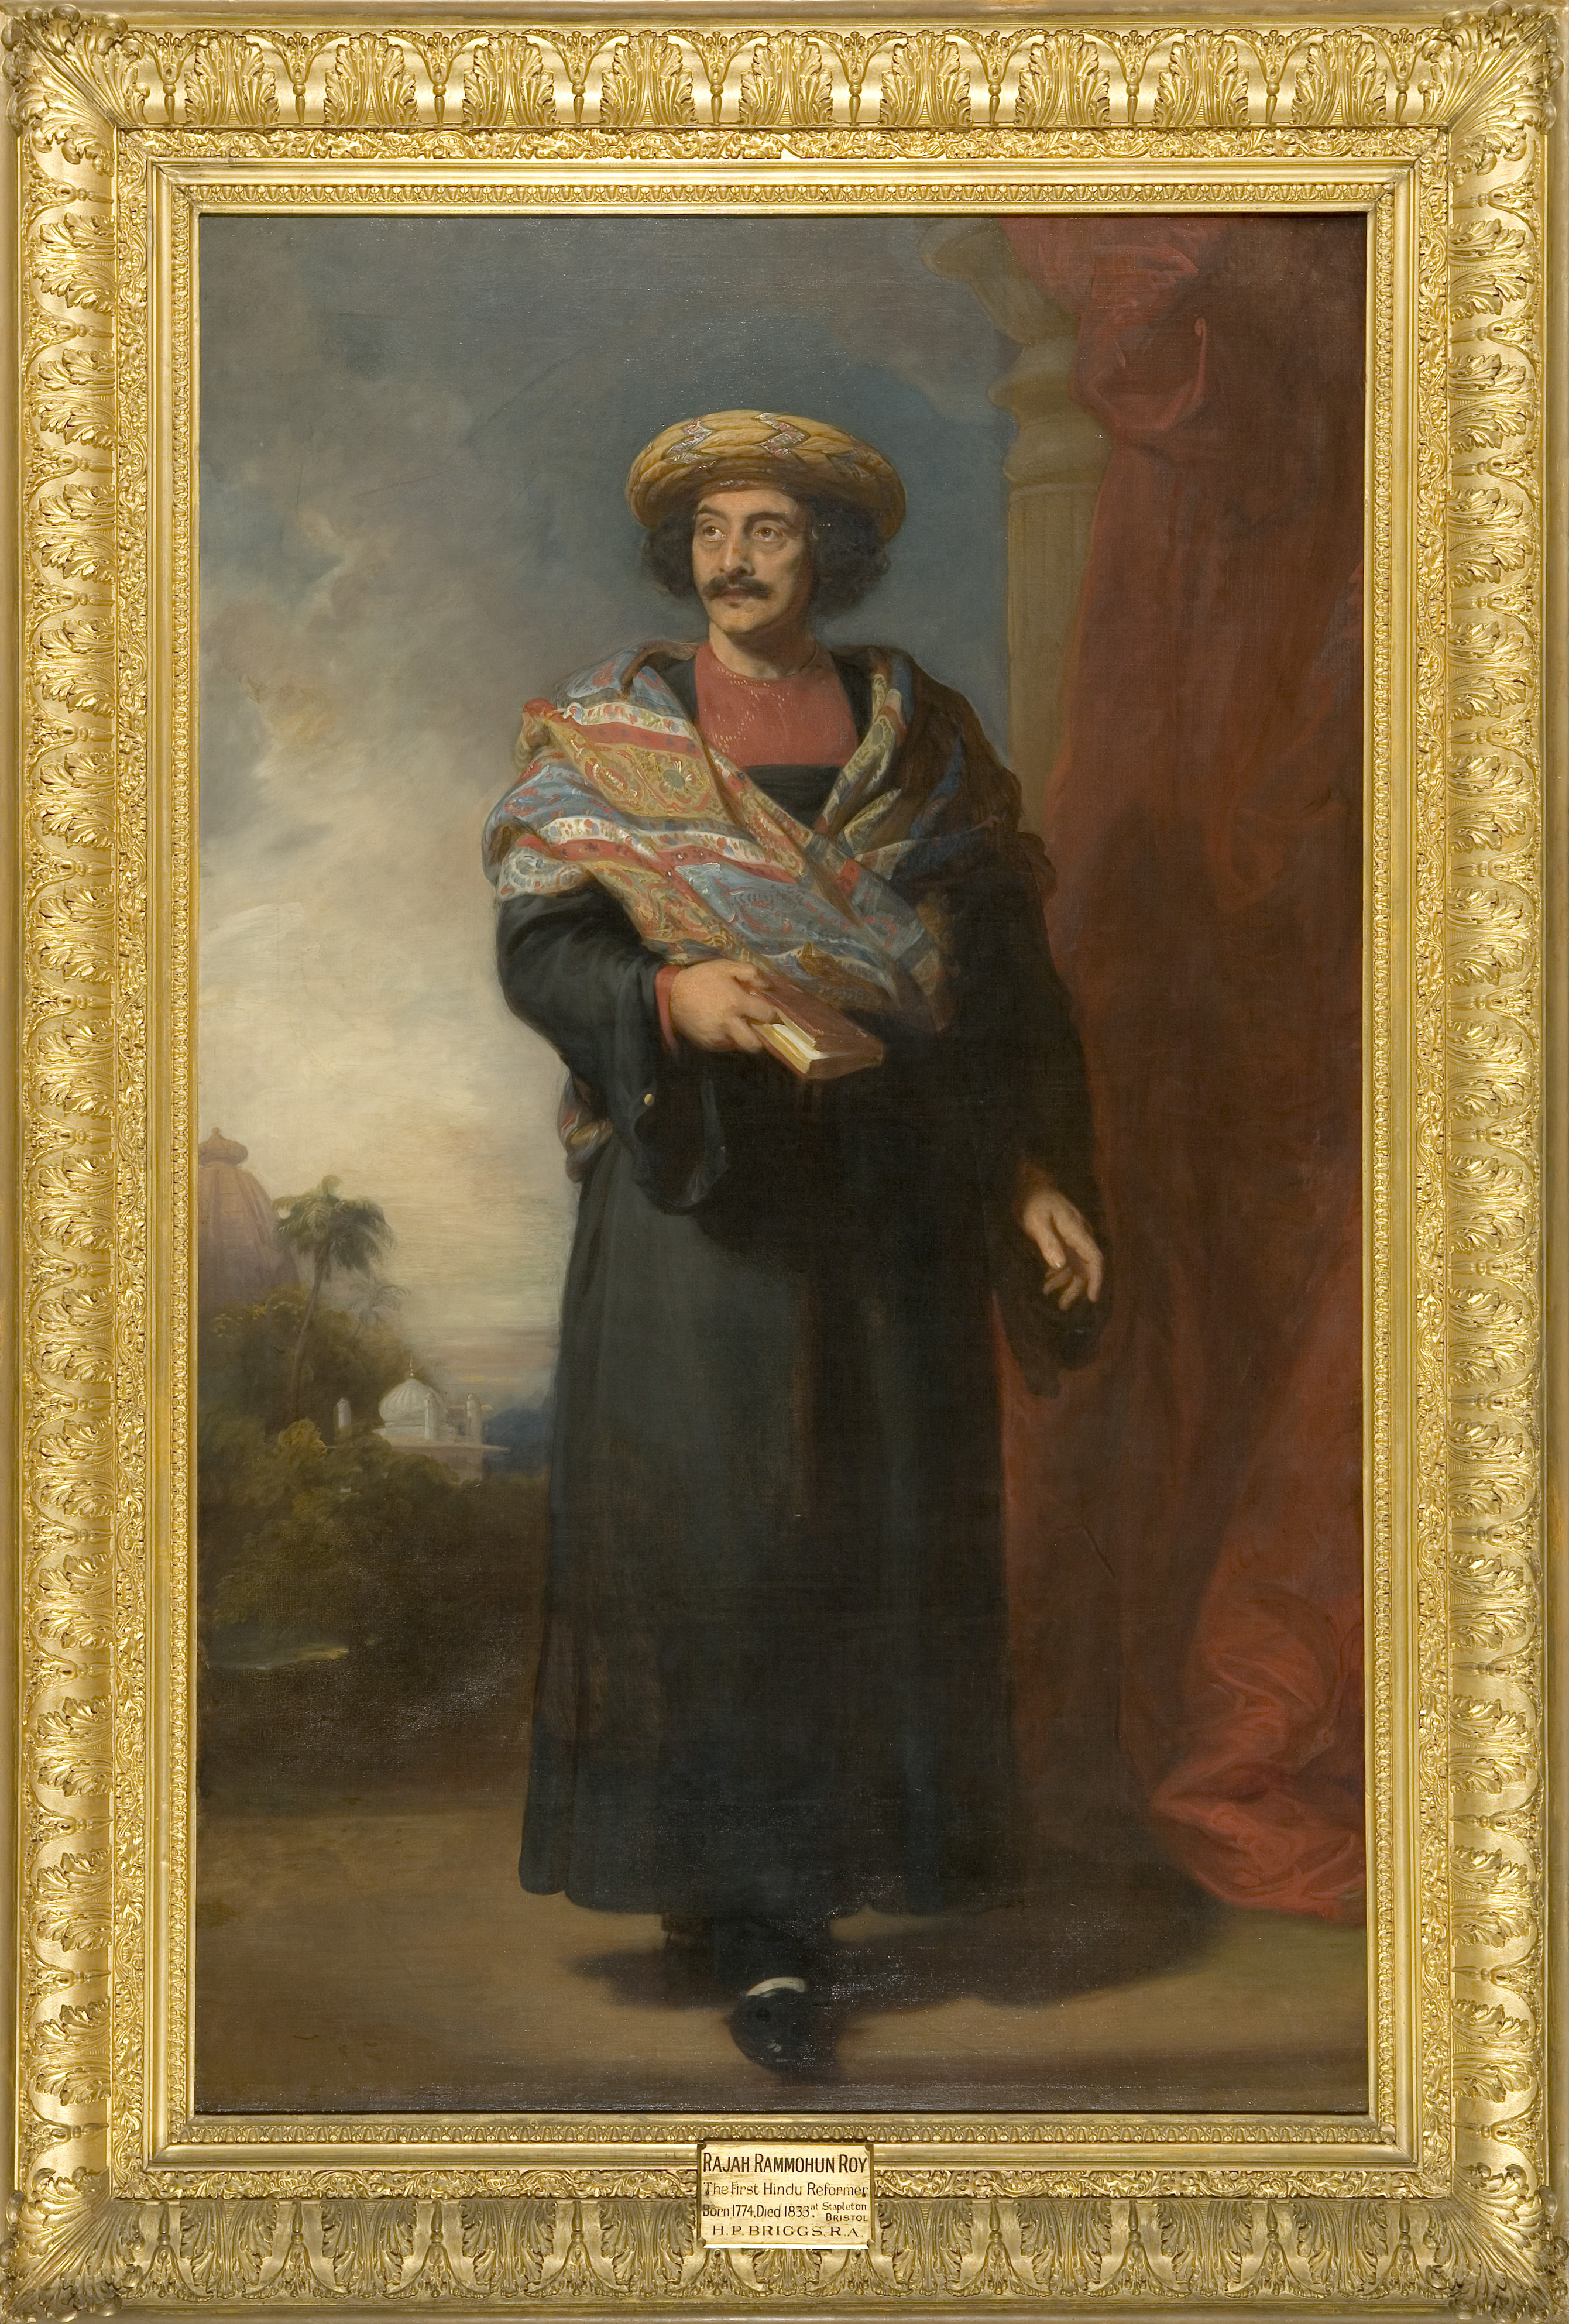 Image: Marking the moment: Portrait of Raja Ram Mohan Roy by Henry Briggs, about 1832, K13 © Bristol museums, Galleries & Archives